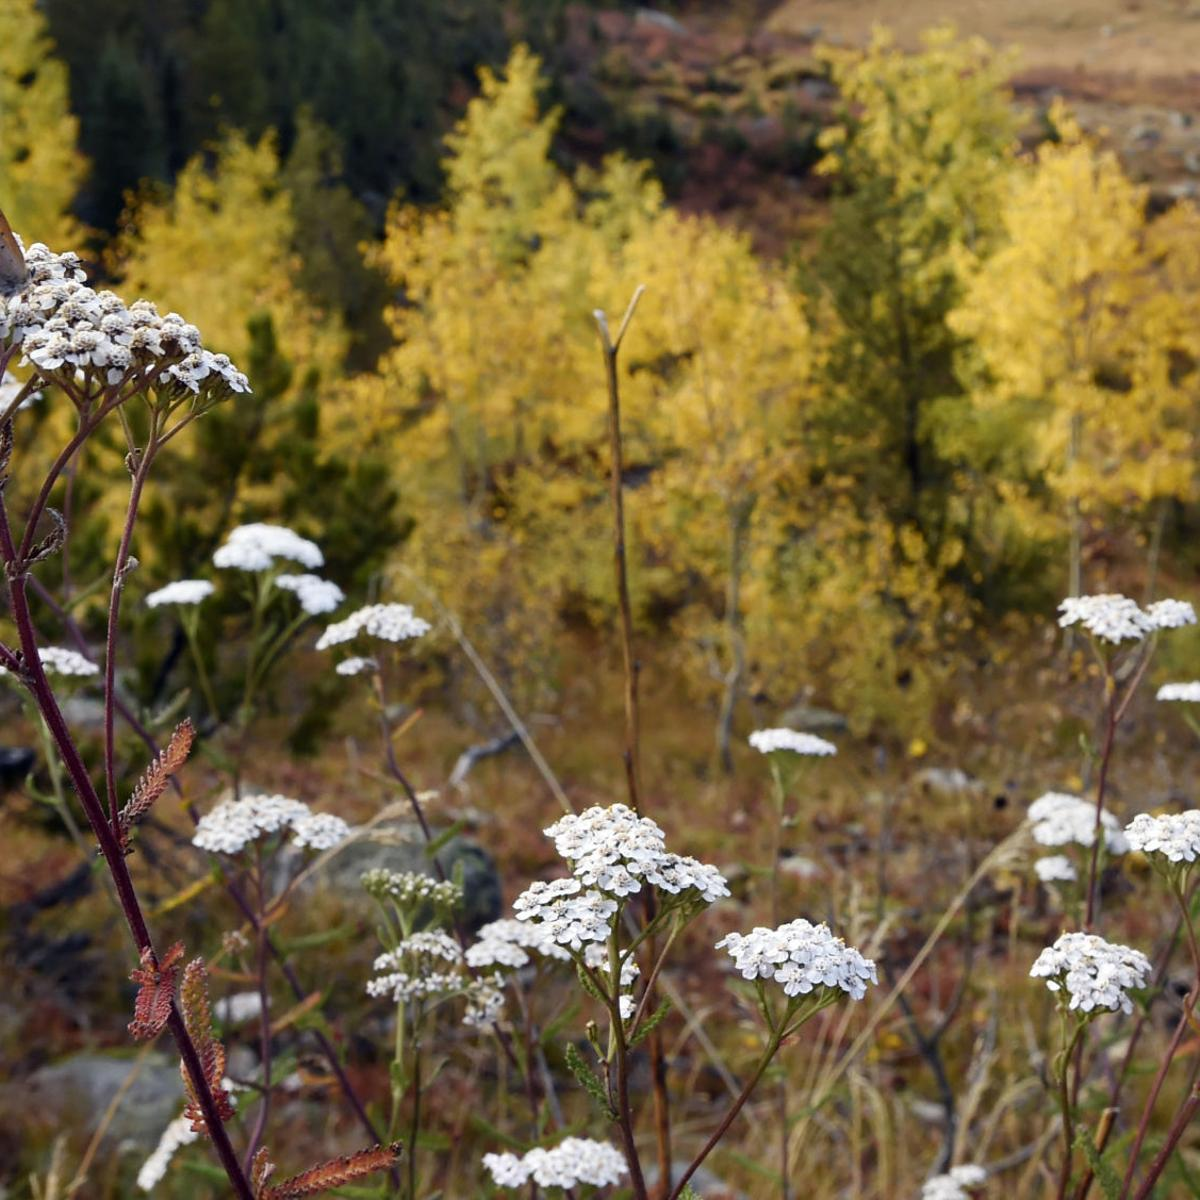 Aspens in Colorado changing early, ready or not | Colorado